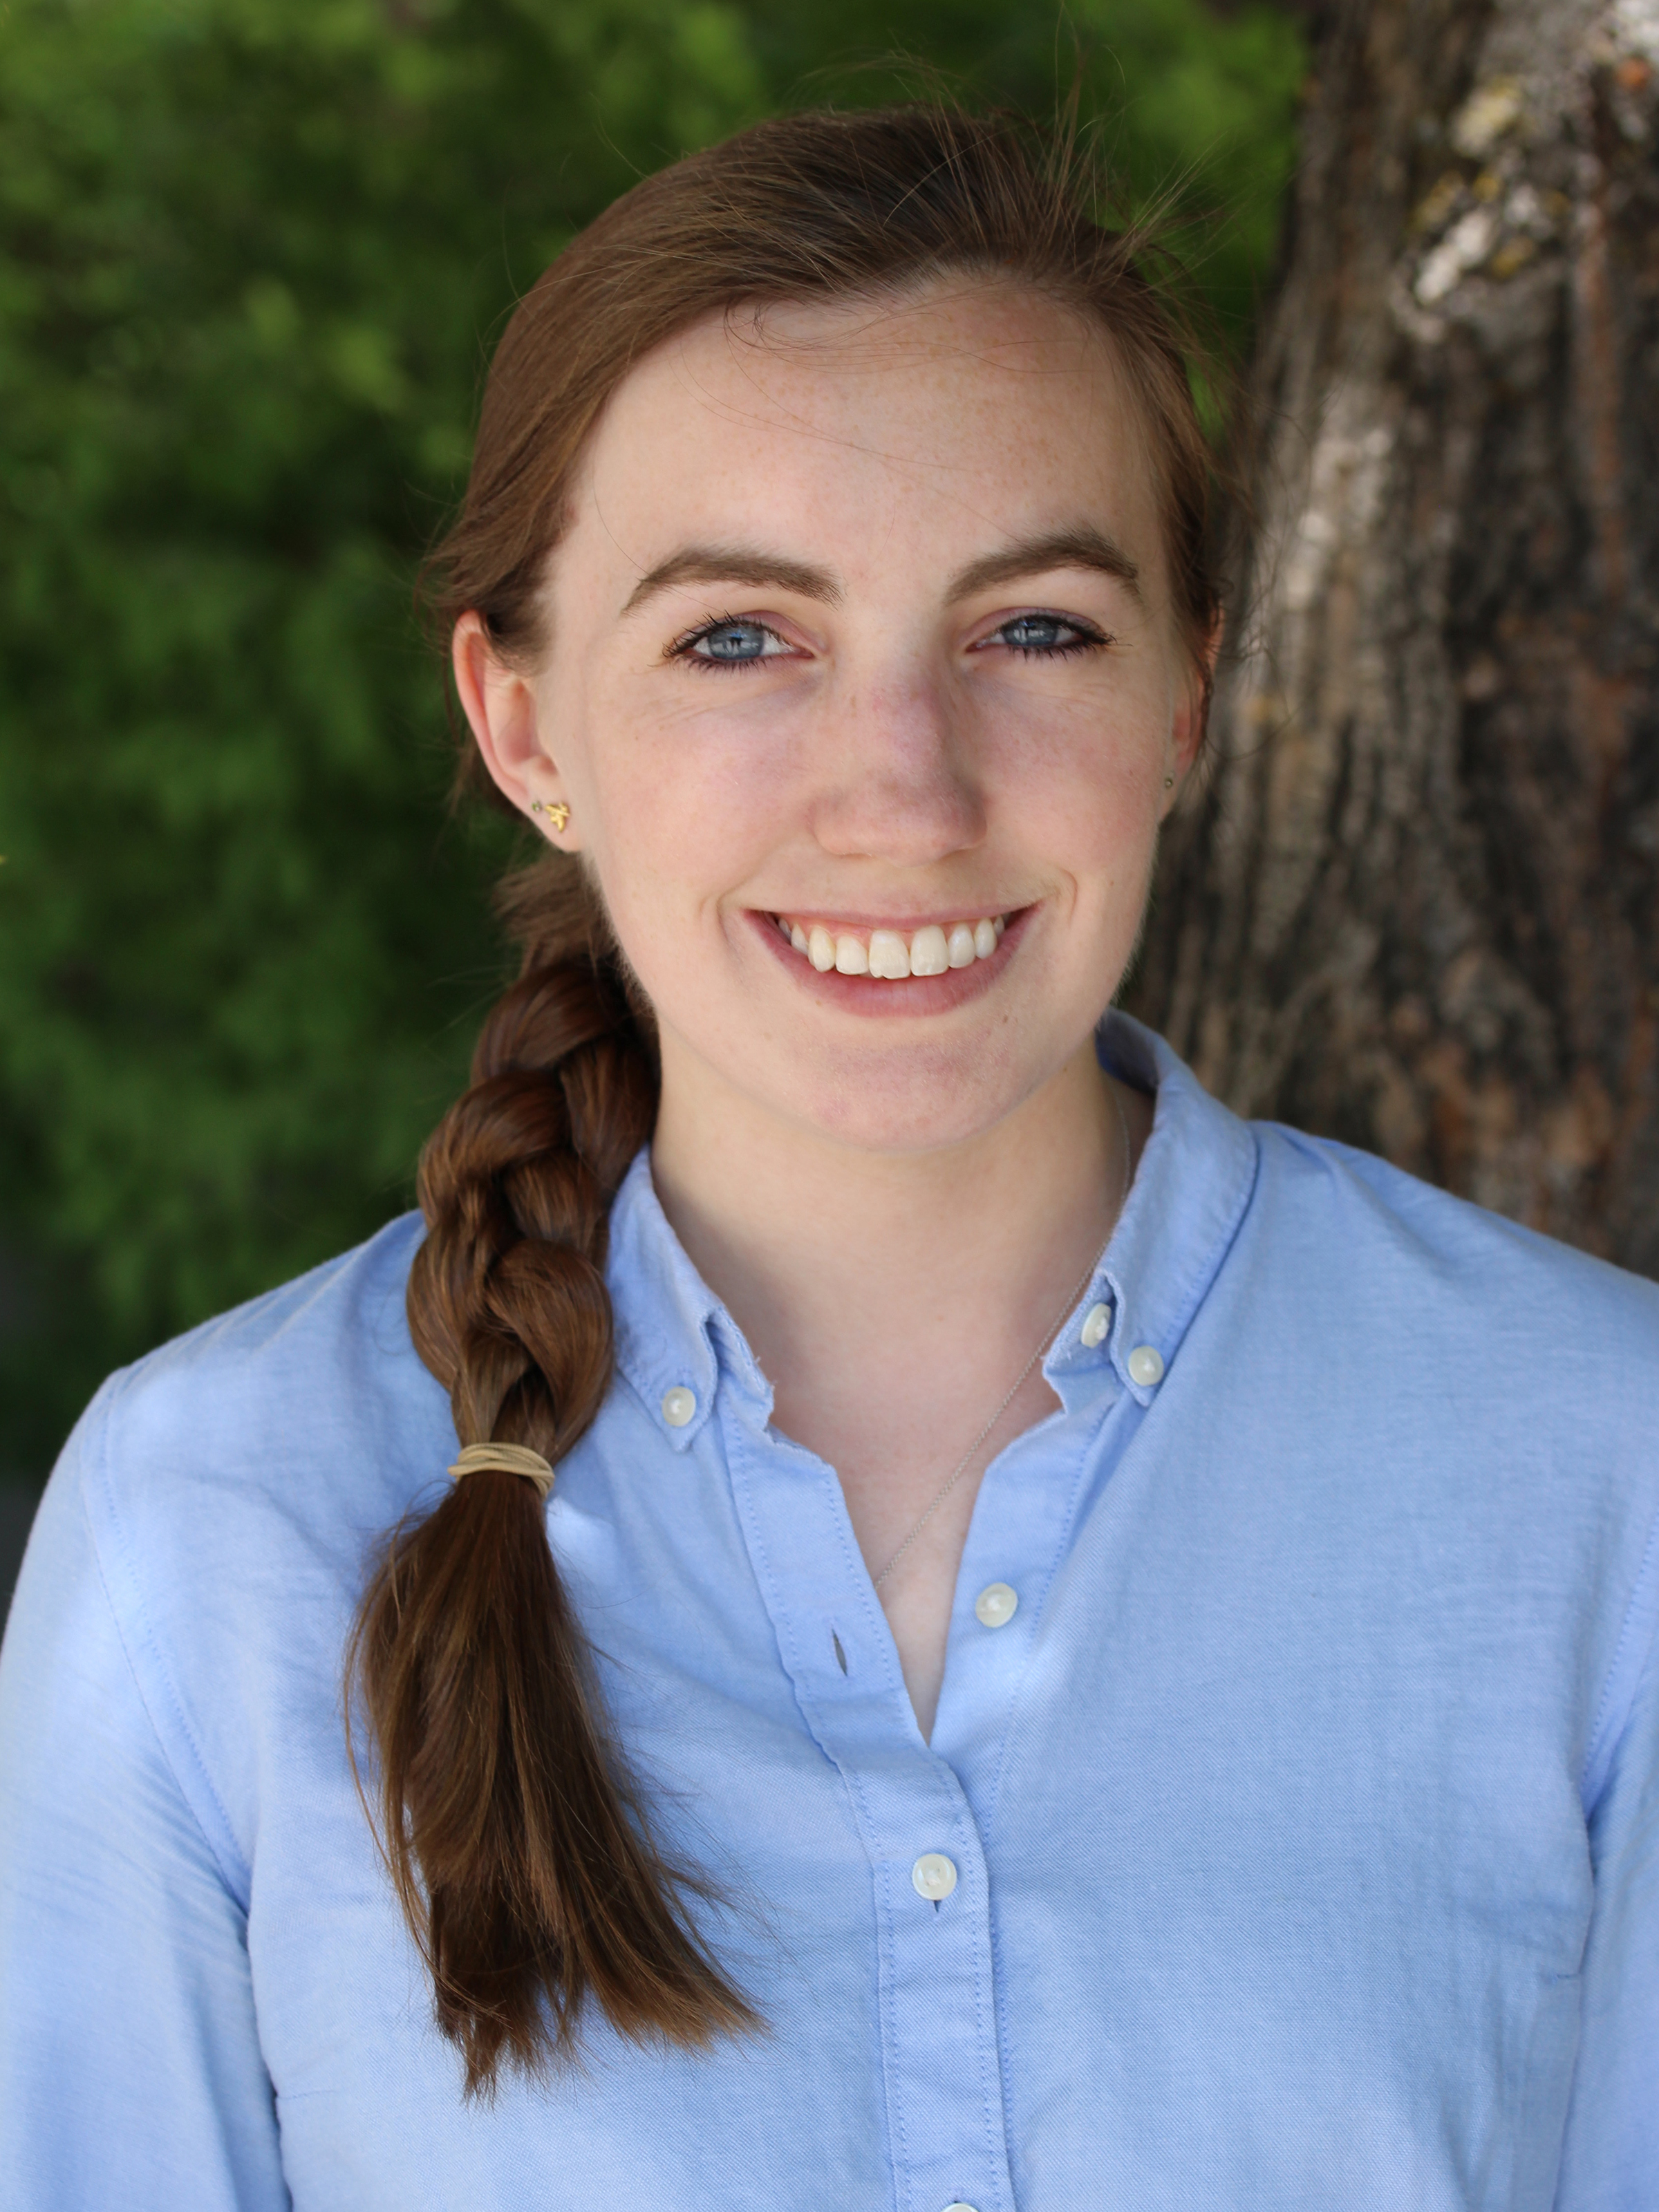 Sarah Lusk, BS. Graduate Student   Sarah is from Portland, Oregon. She completed her undergraduate studies in Biology from the University of Oregon. Sarah was first introduced to zebrafish as an undergraduate and following graduation continued her research studying axonal transport and microtubule dynamics. Sarah is currently interested in understanding the role of Hedgehog signaling and its underlying genetics in early development of the optic cup. When not in lab, Sarah enjoys exploring Utah's wilderness and parks, photography, and an Oregonian microbrew.